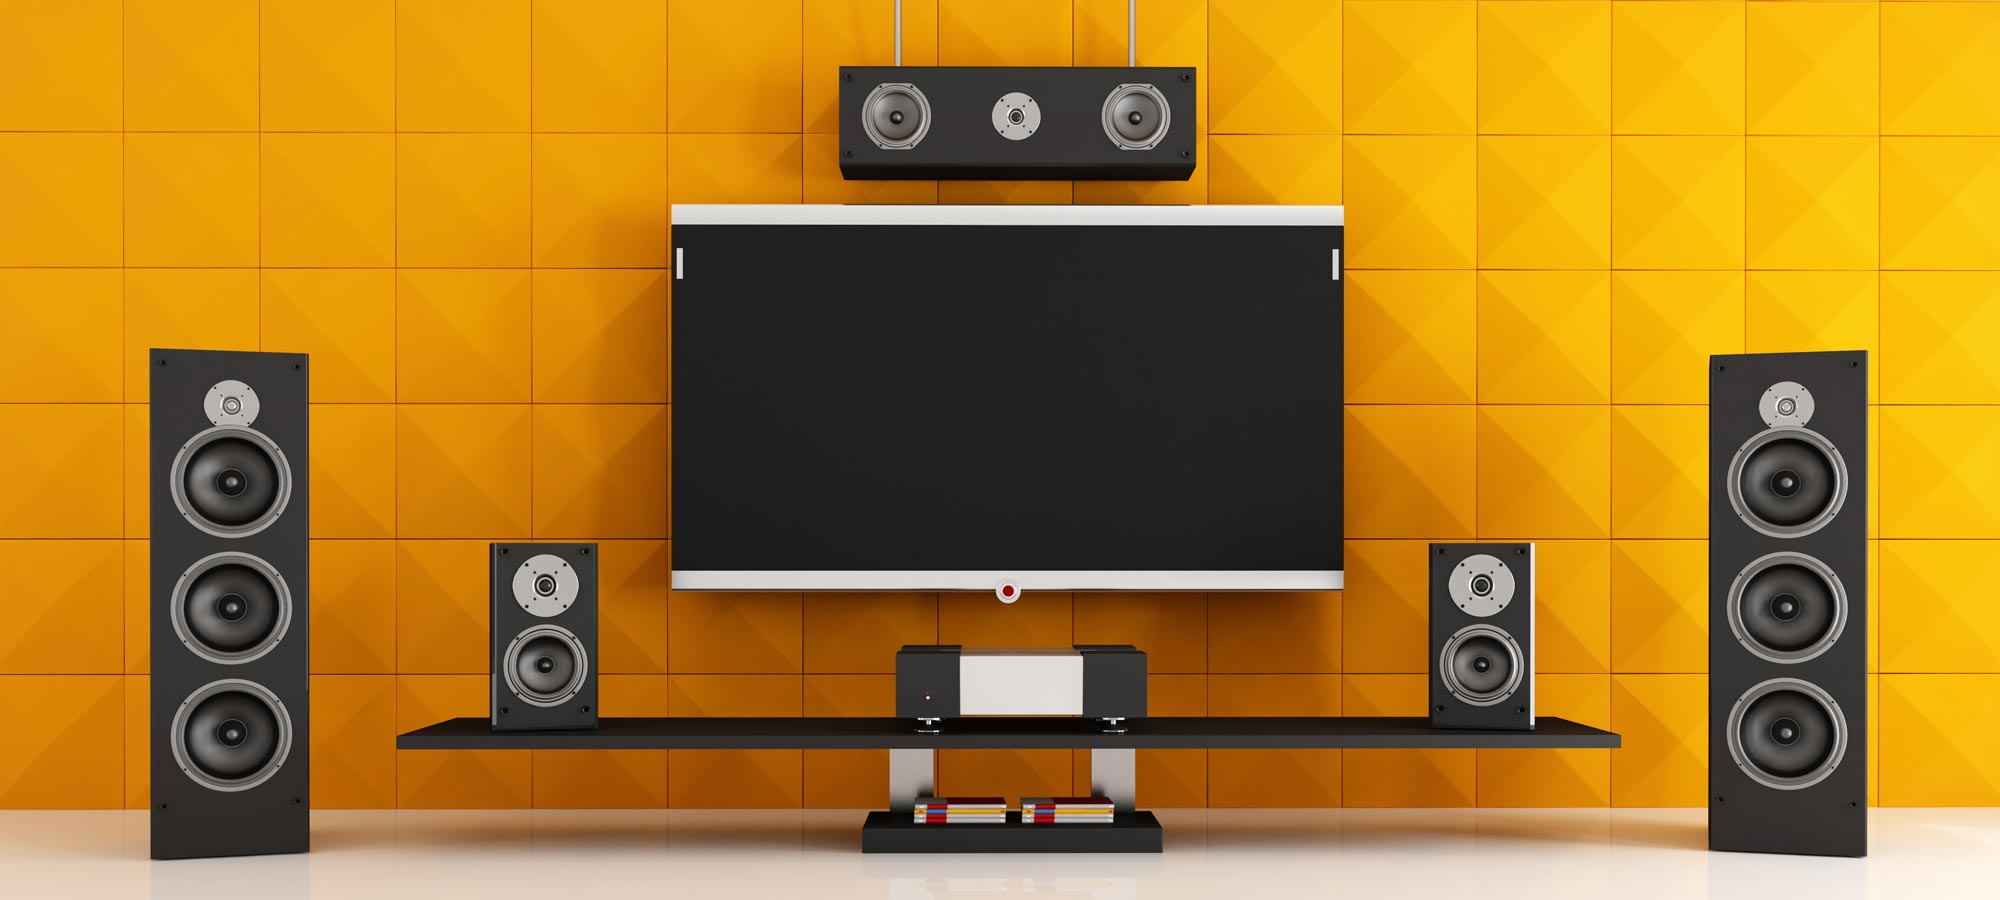 Best Home Theater Systems Adorama Learning Center Switch To The Dvd Source Or Satellite Tv For Surround Sound System